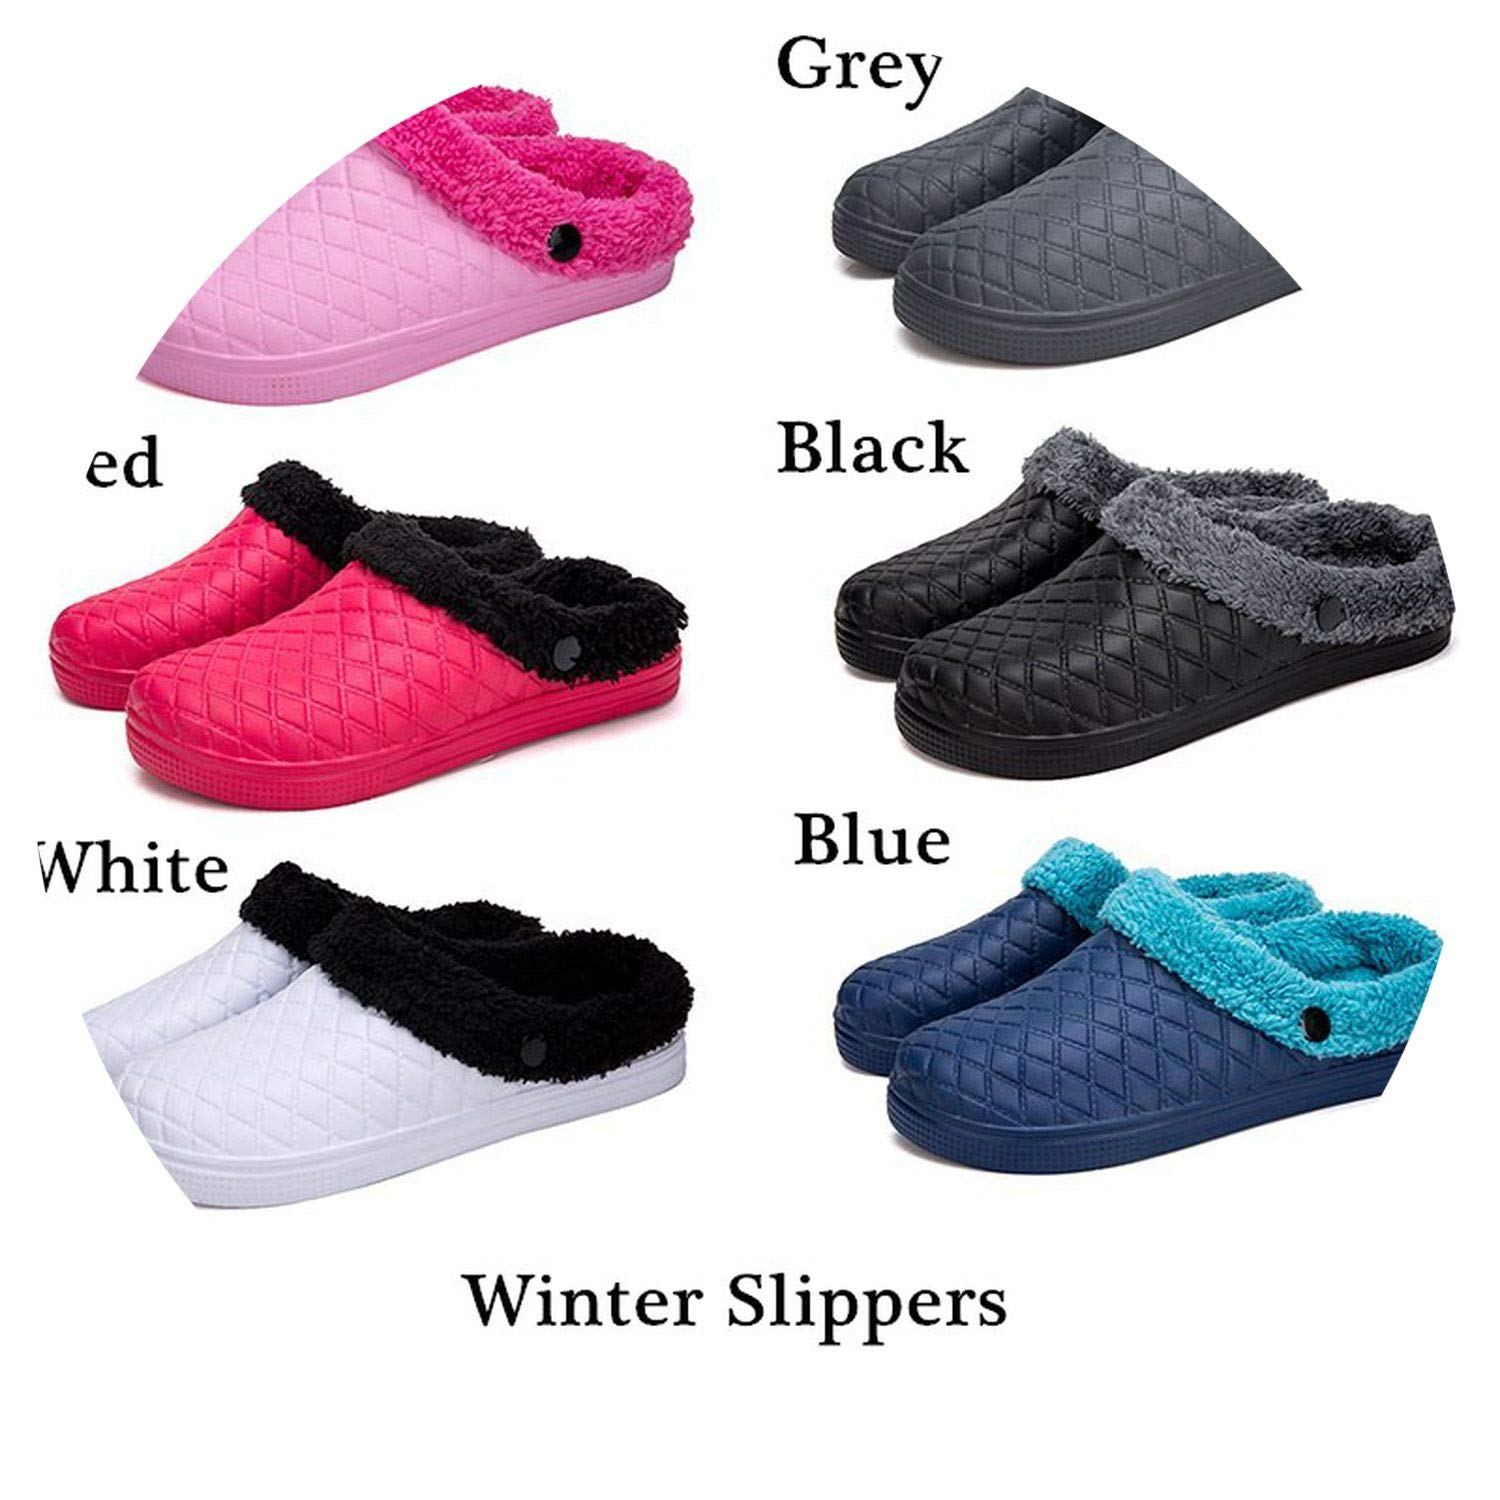 New-Loft Shoes for Women Indoor Hotel Slippers Lover Sneakers Sandals Warm Slippers Women Clogs Mules